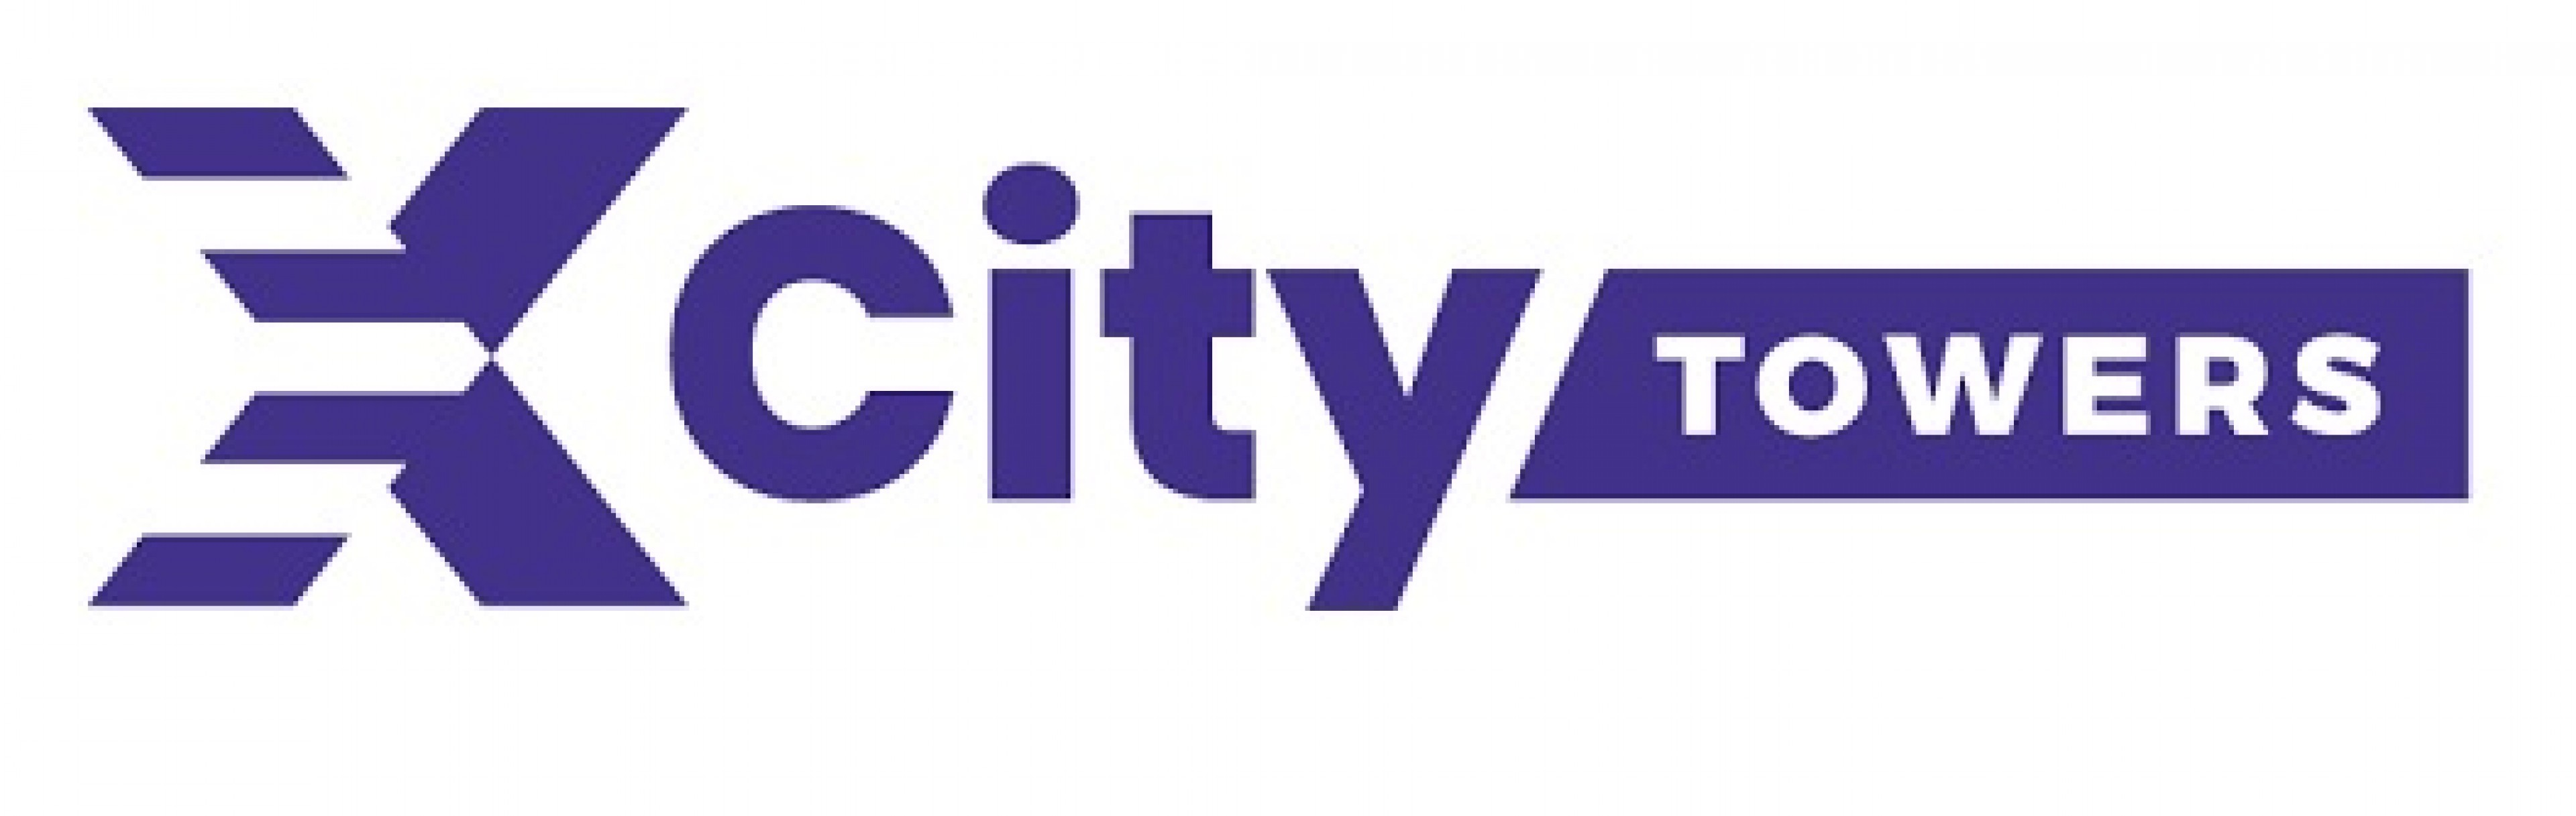 Logo XCity Towers